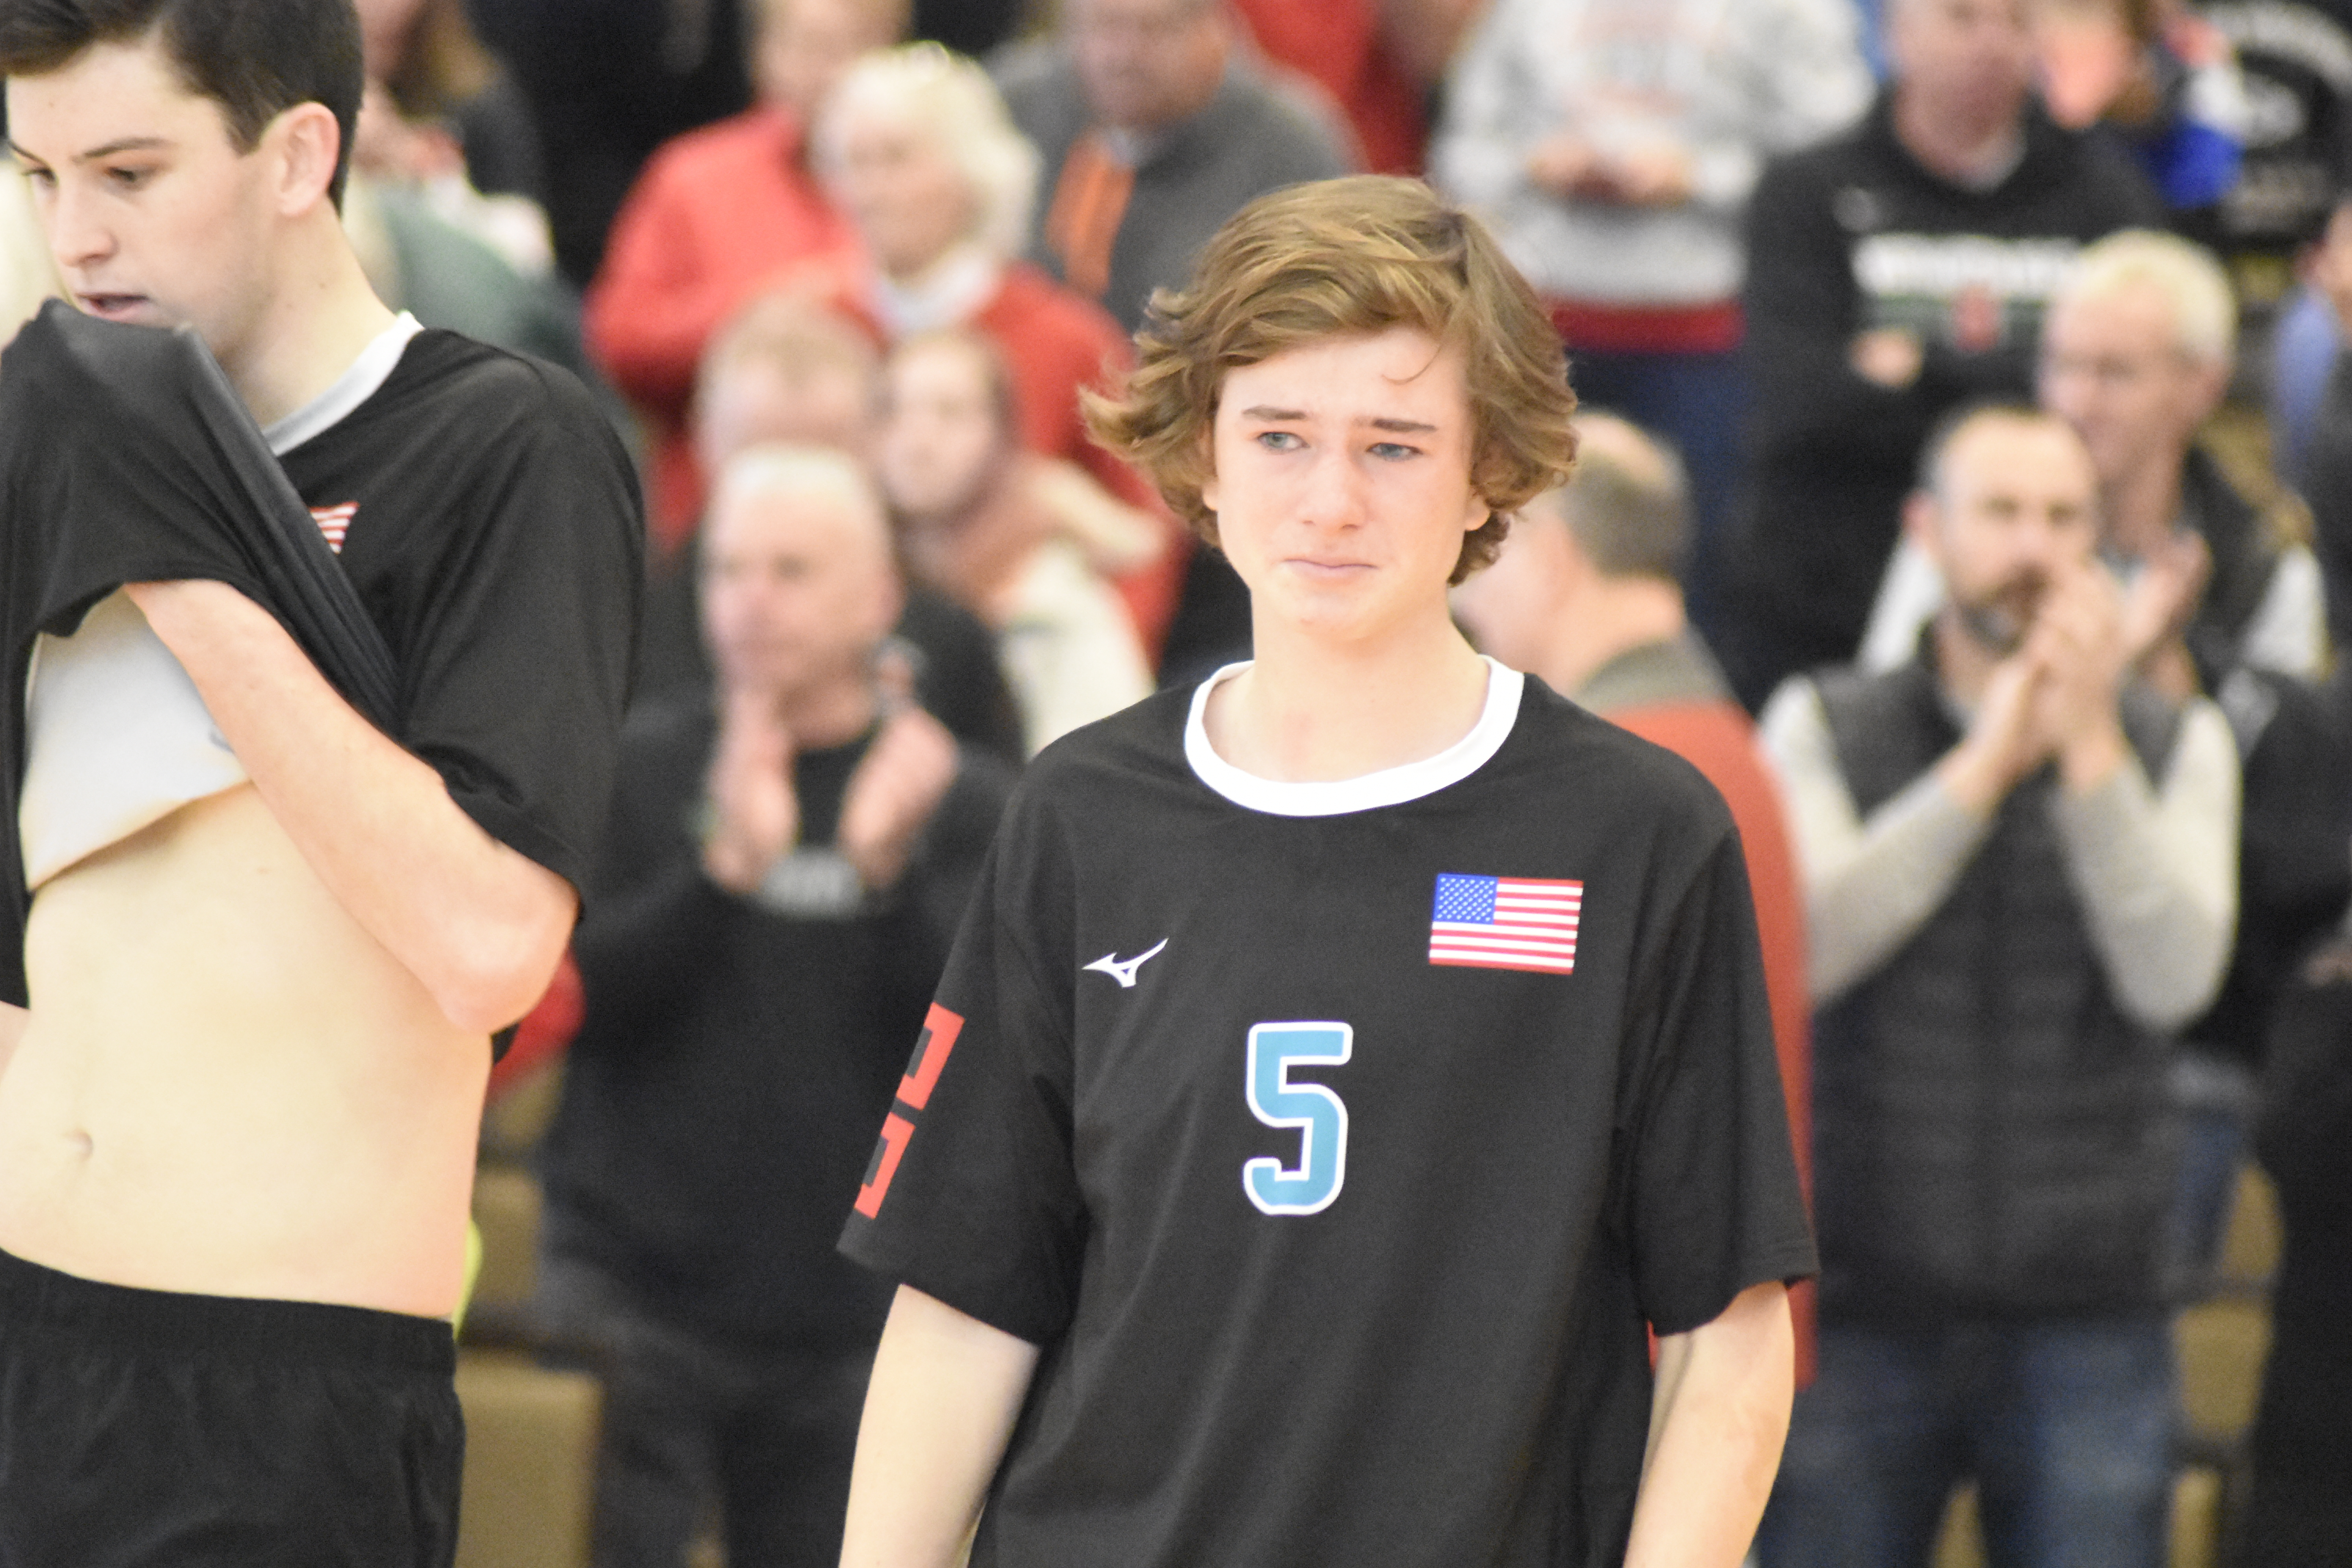 A number of players, such as sophomore Conor Farnan, shed some tears after the Hurricanes lost all four of its games and not advancing to the finals.